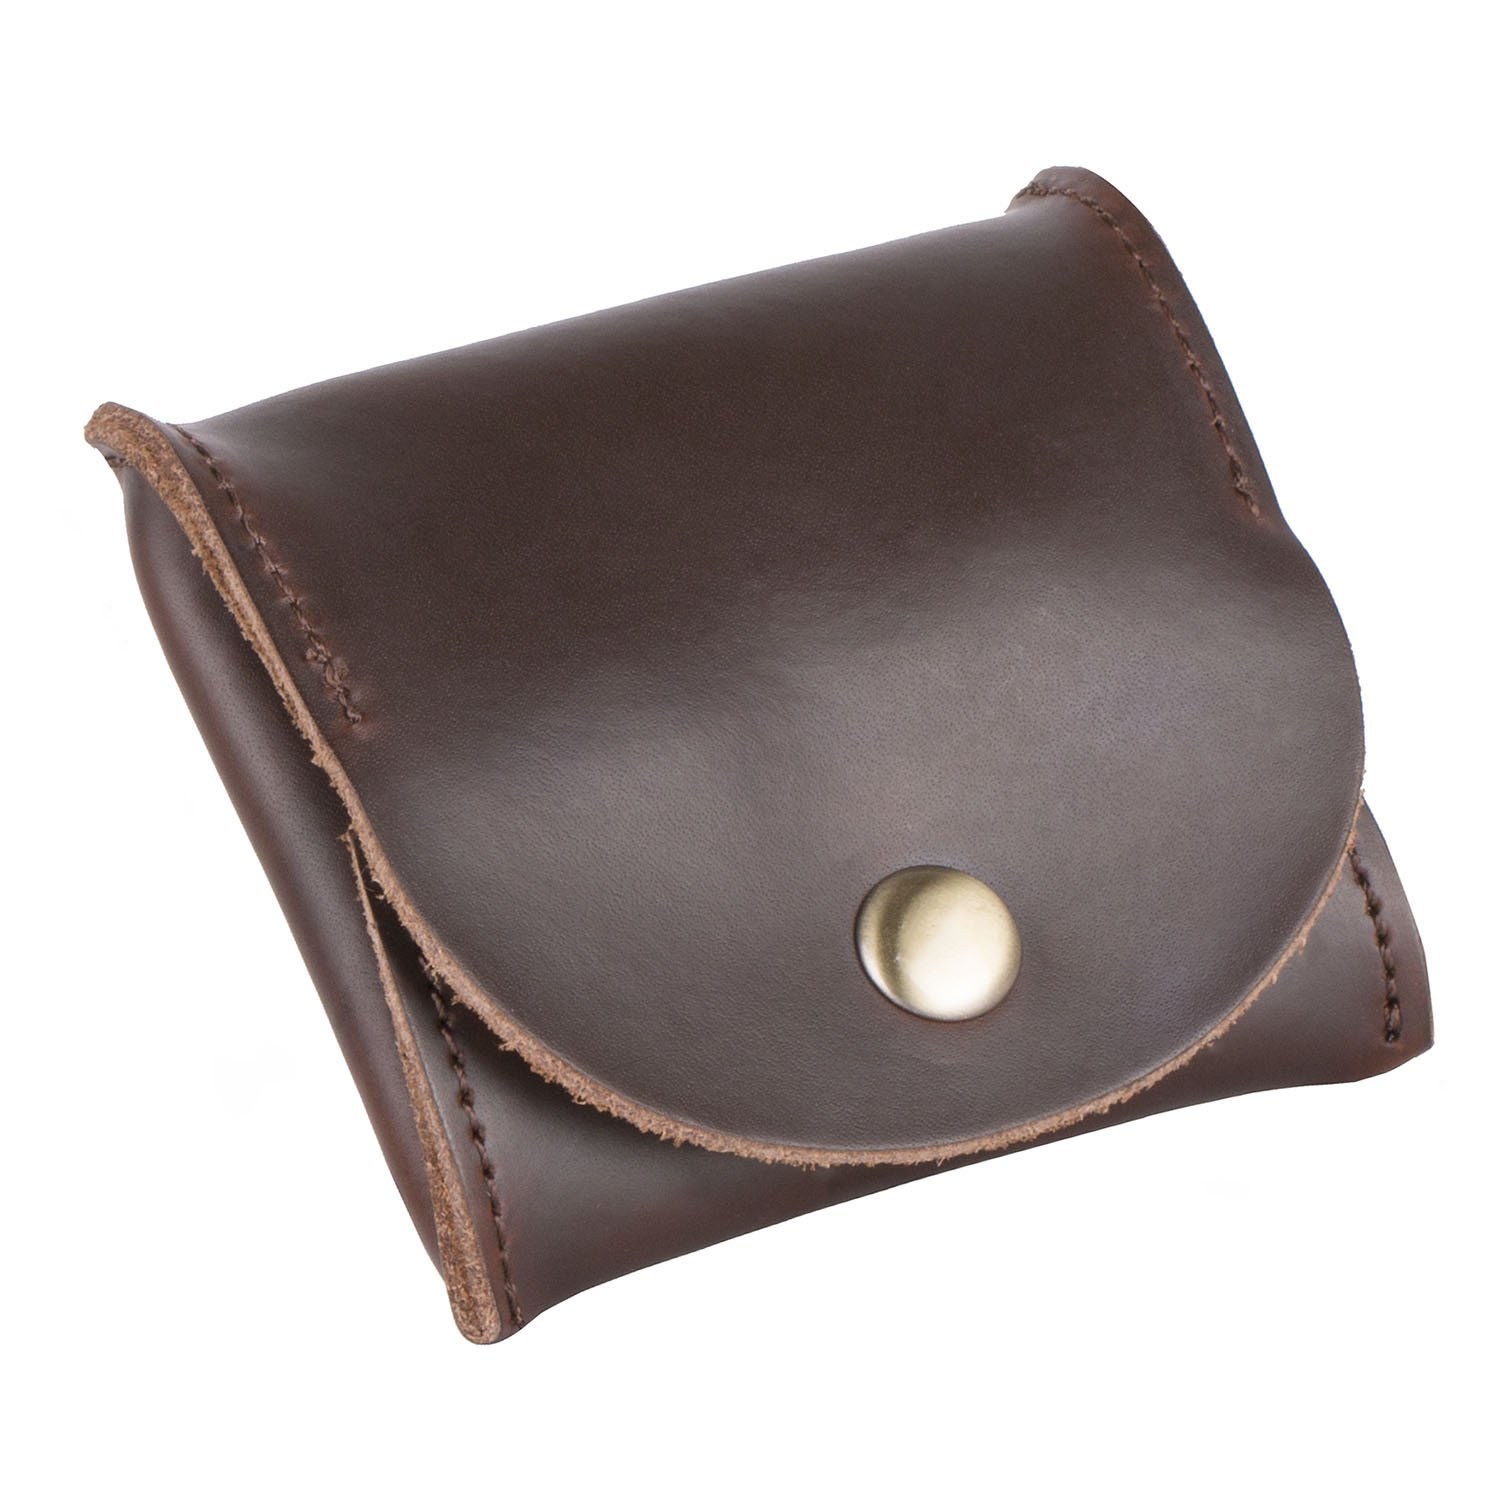 Z PLINRISE Leather Mini Coin Purse with Metal Fastener, Small Wallet, Coin Pocket, Rectangular Shape, 3.1''x2.9'', Brown by Z PLINRISE